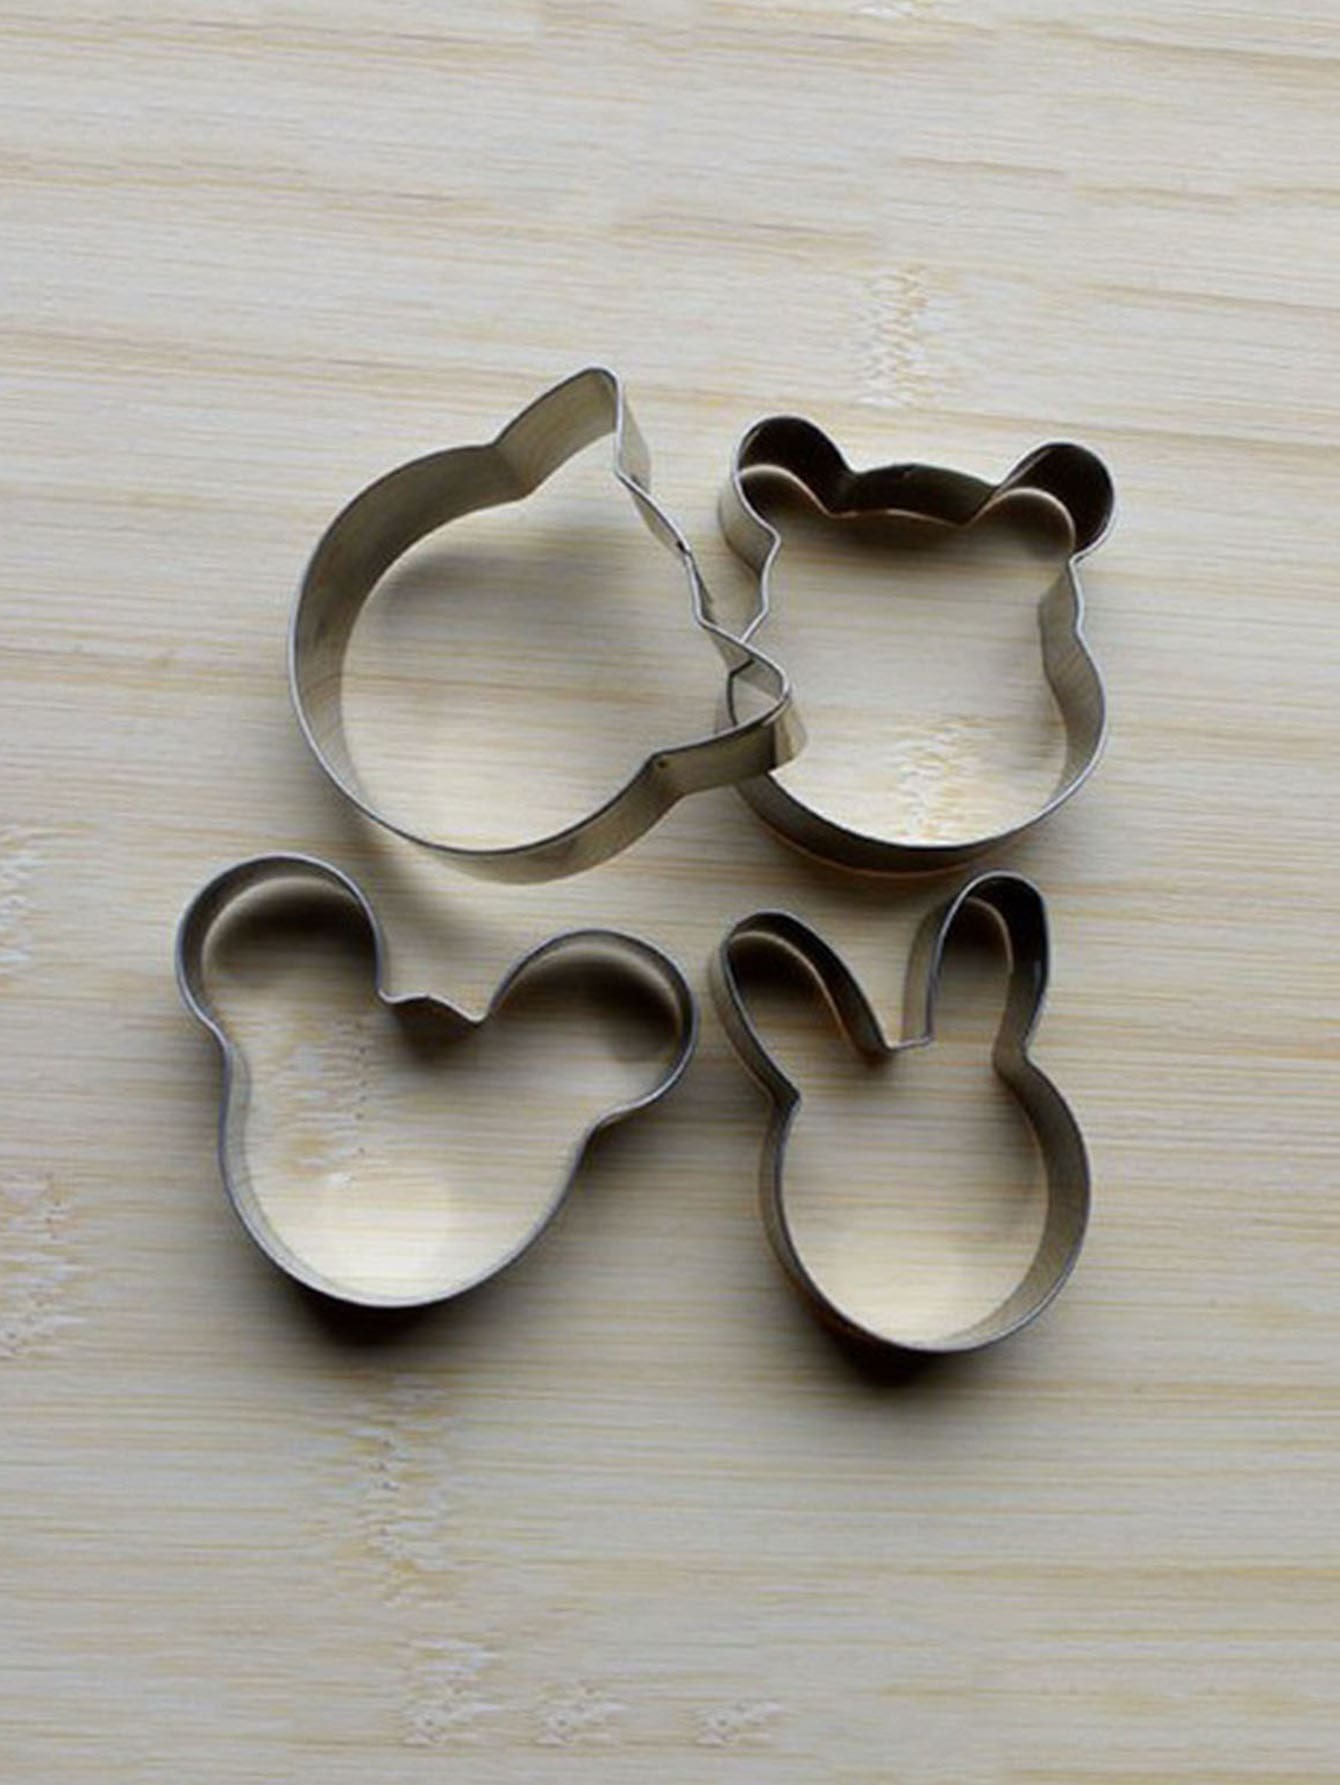 Stainless Steel Animal Cookie Cutter 4pcs stainless steel abs spring cookie cutter blue silver